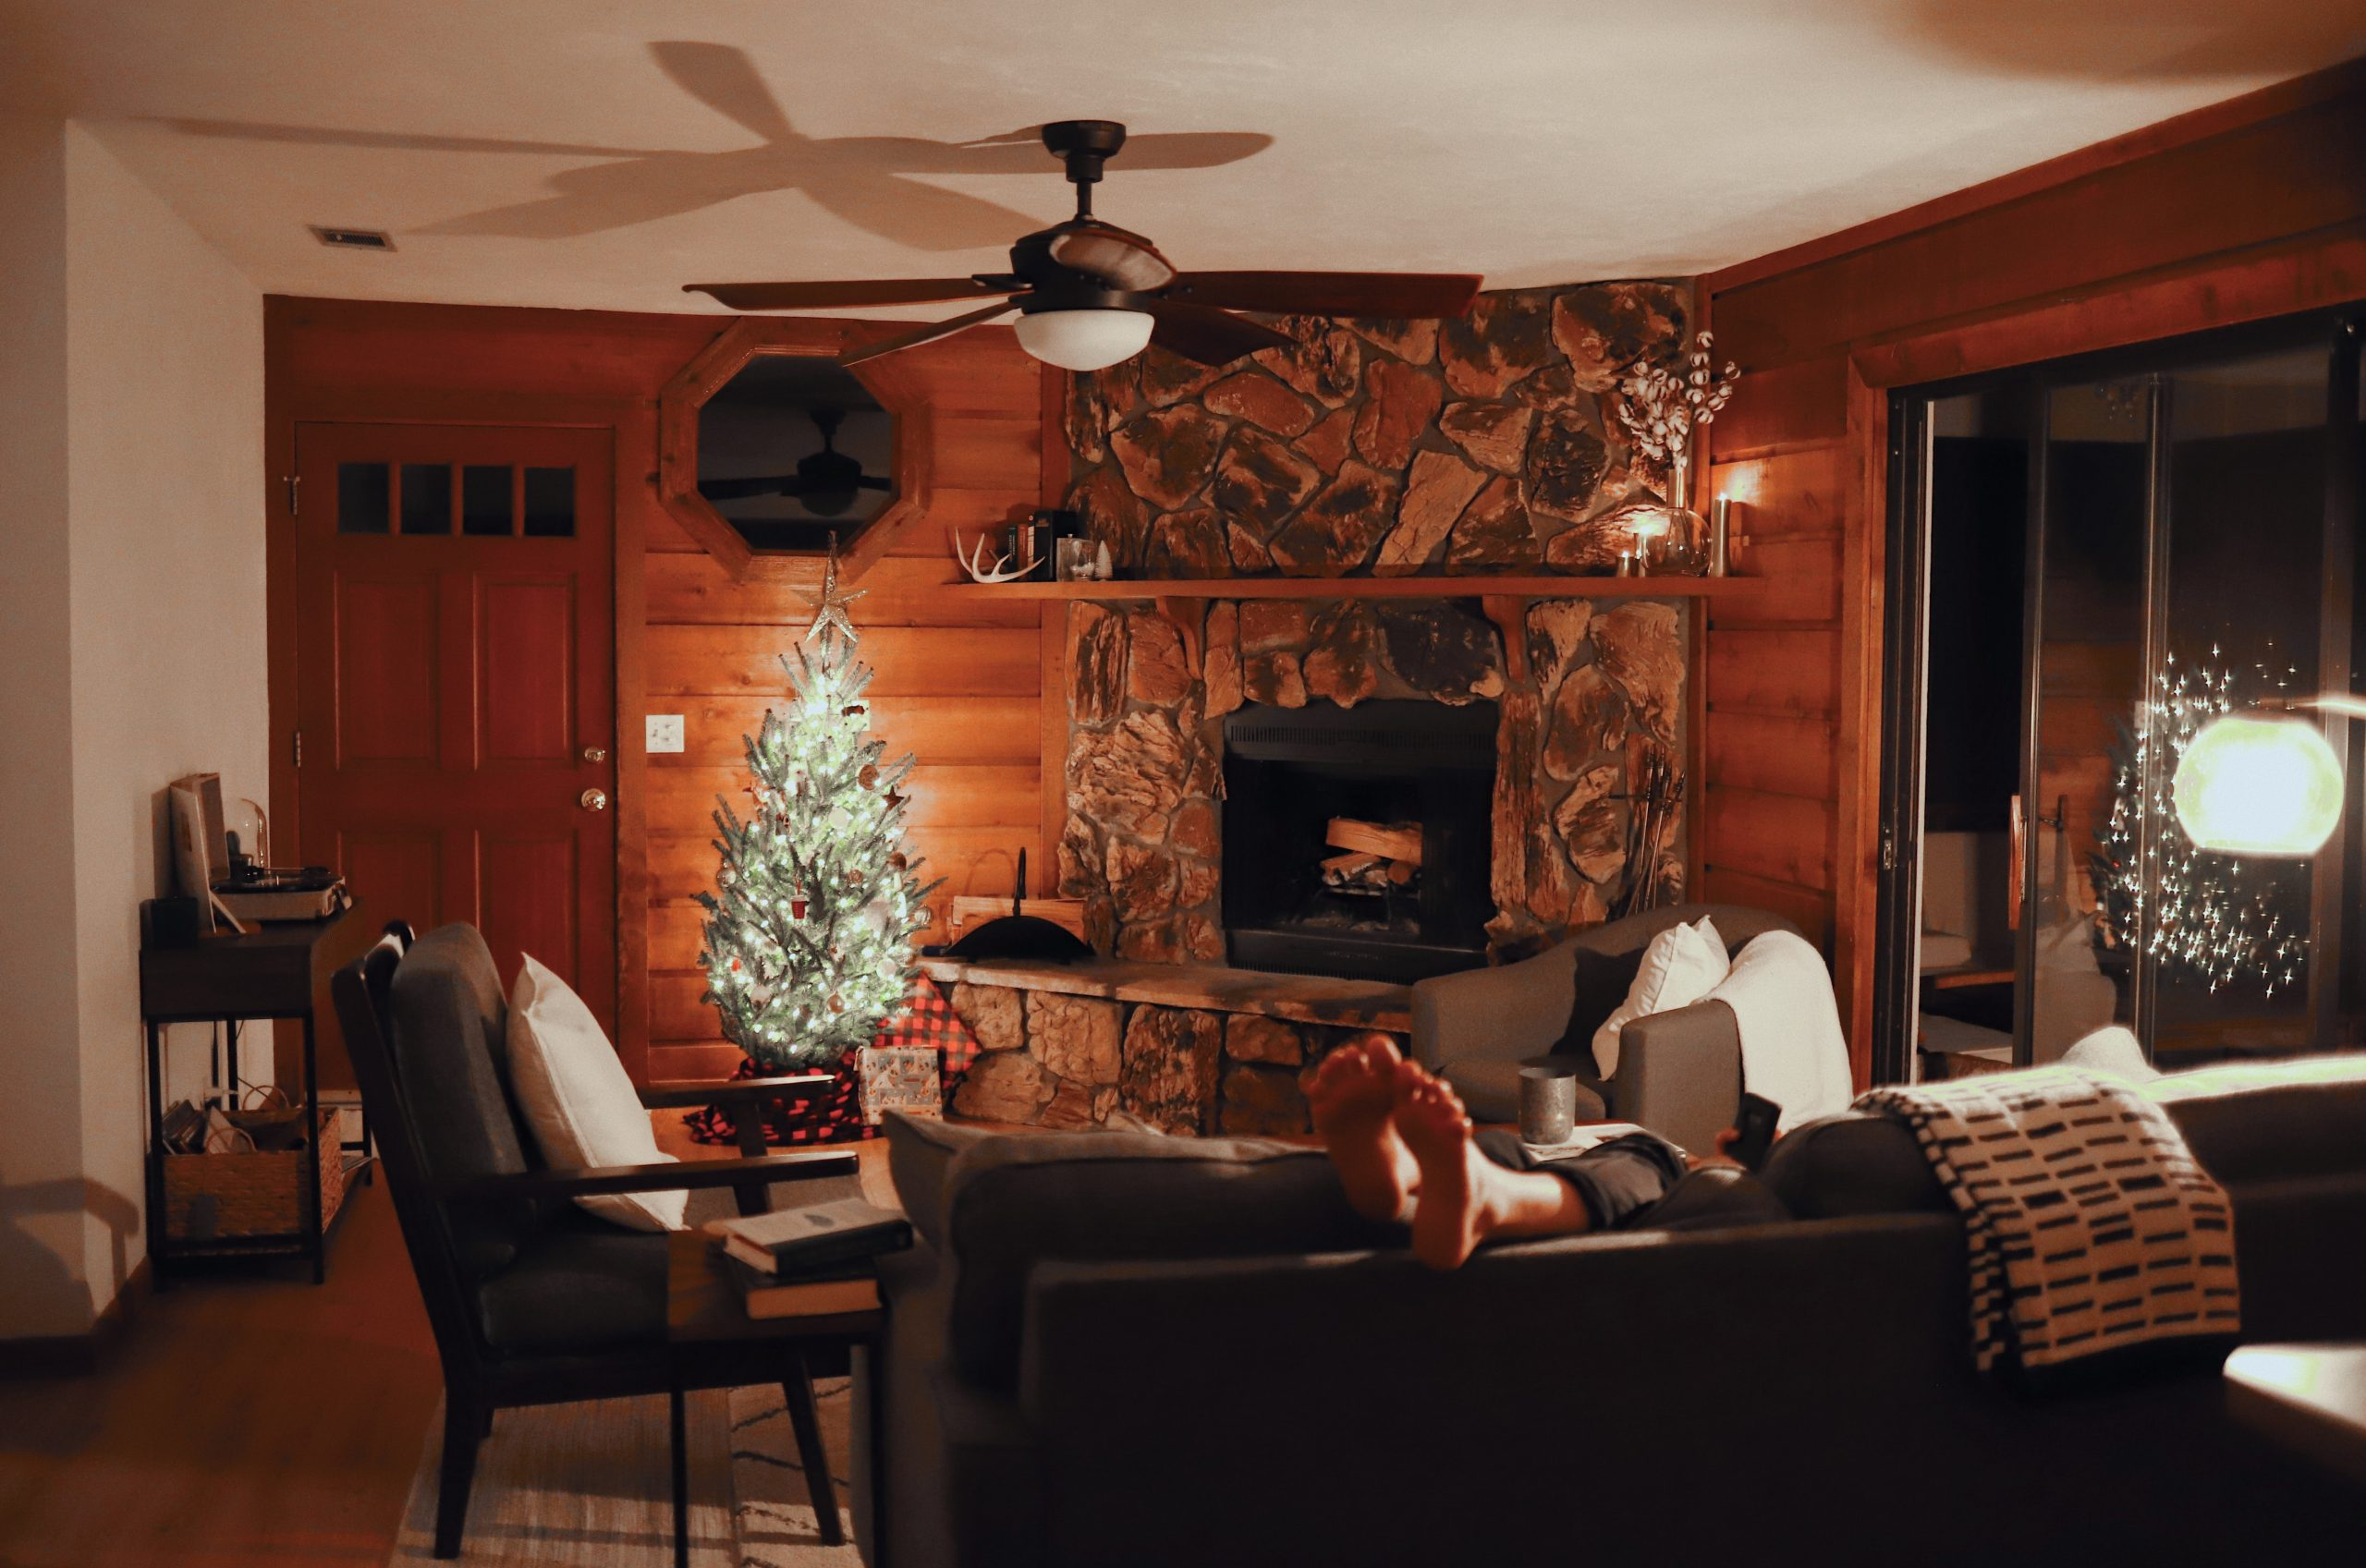 fireplace tiles to warm your home